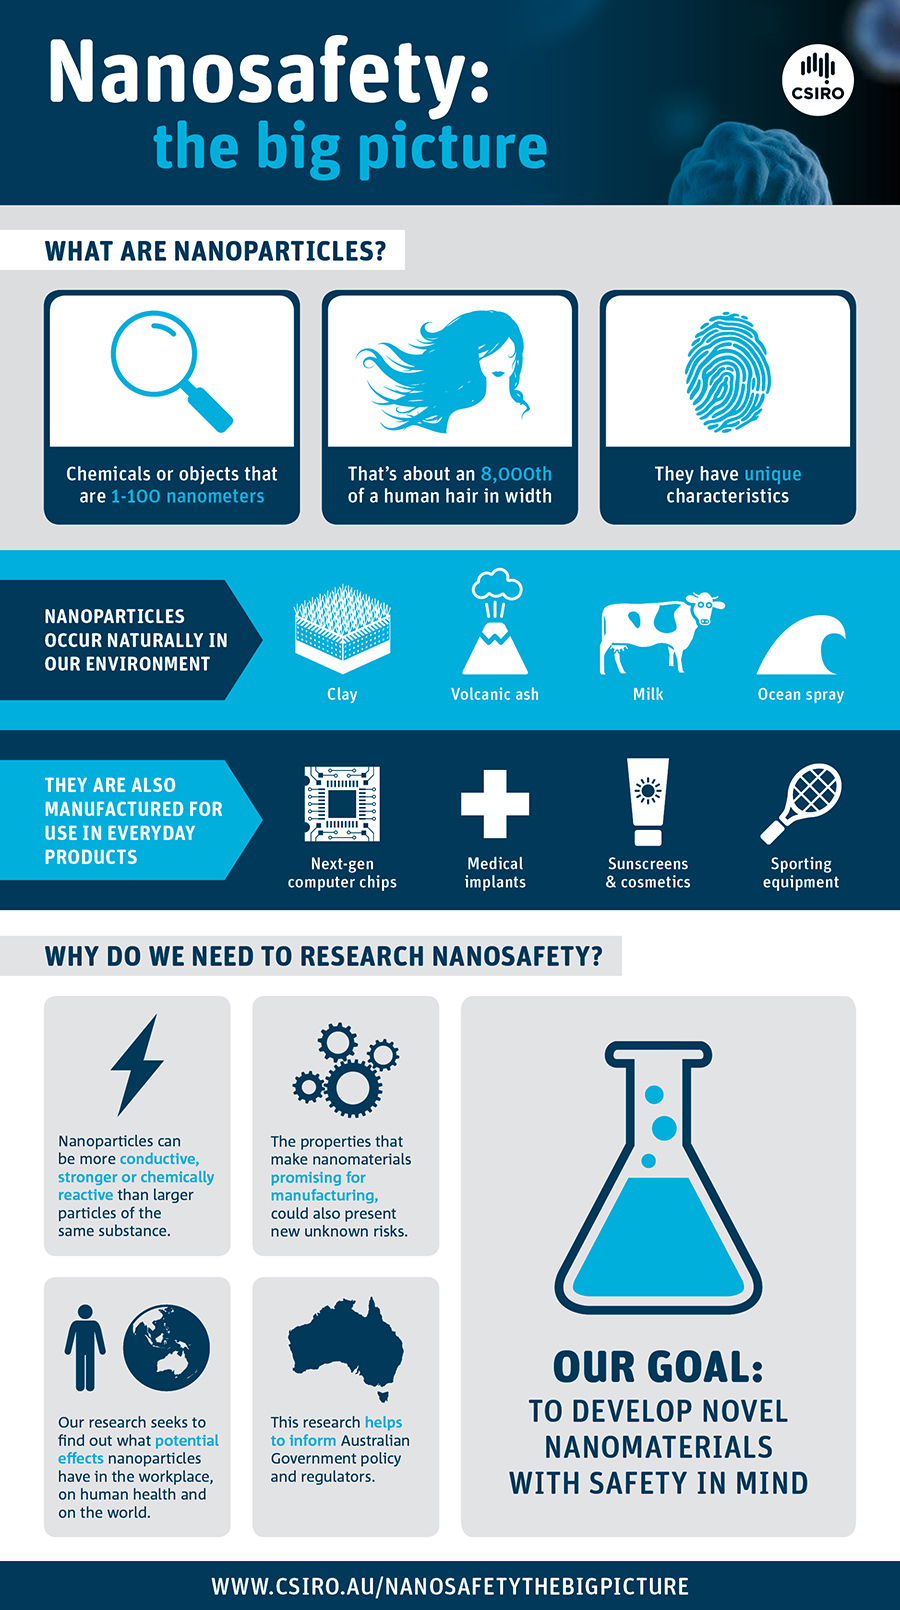 Nanosafety: the big picture, info graphic with icons and text